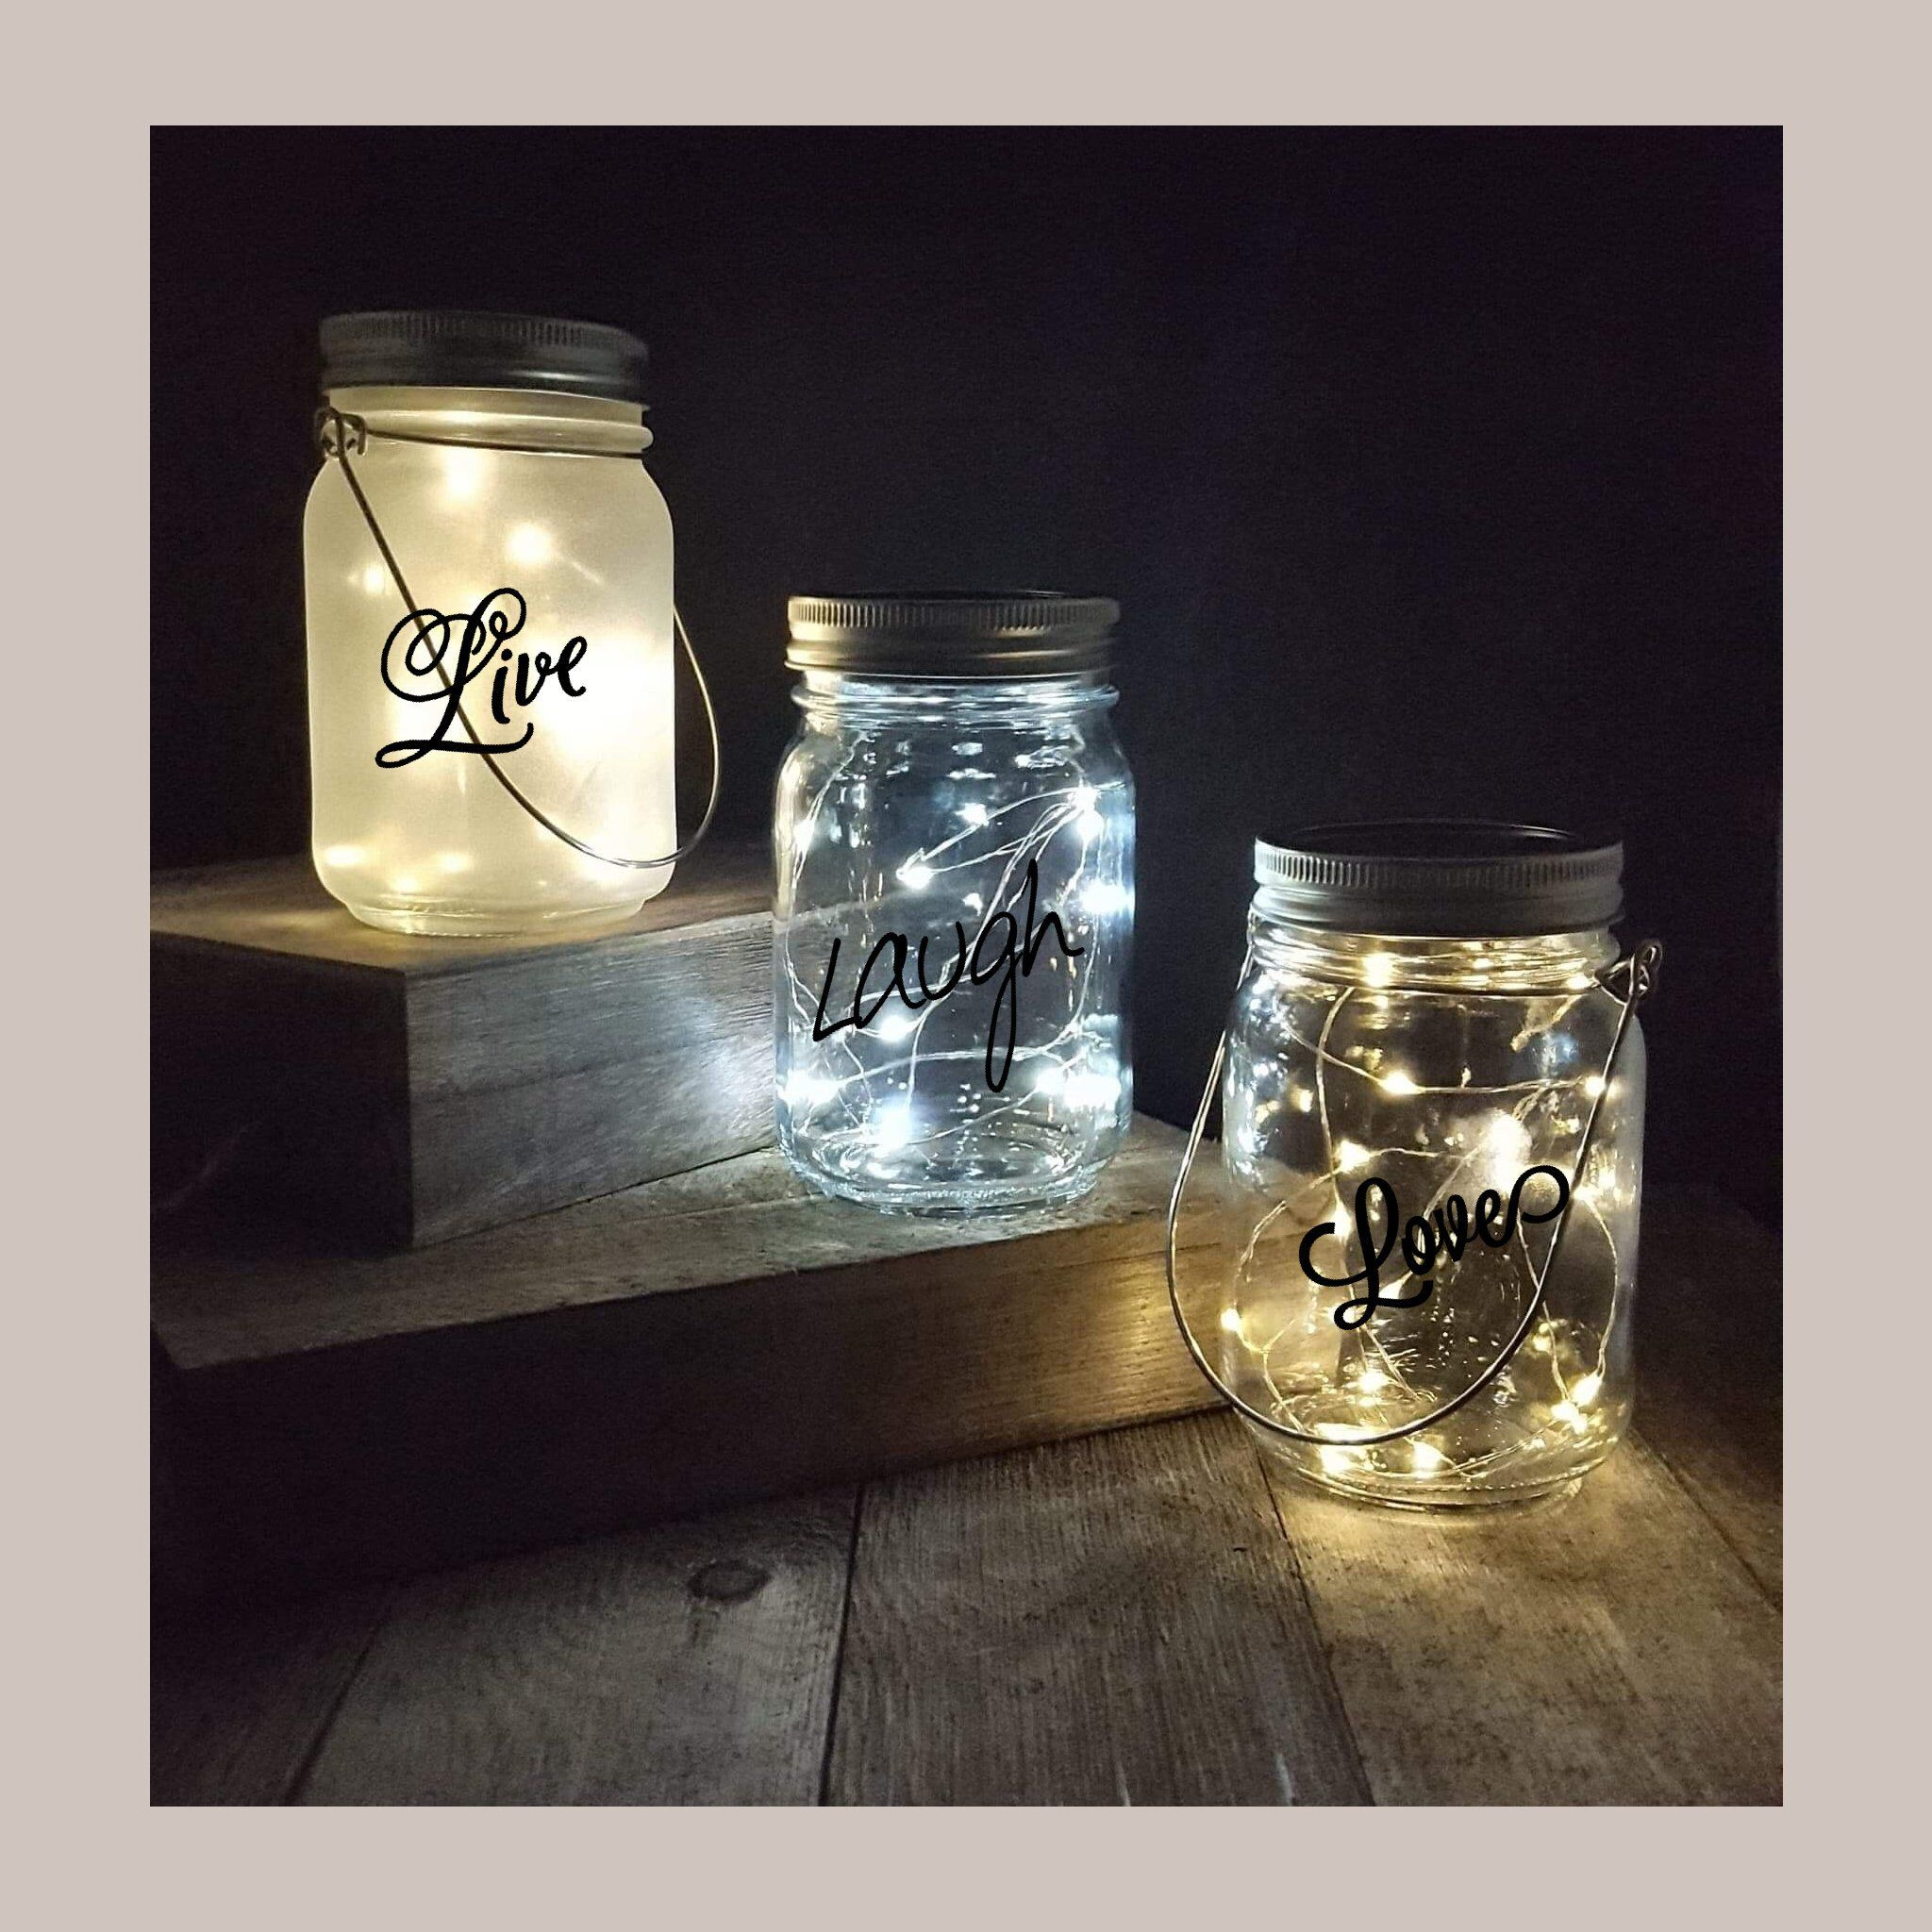 Solar Powered Hanging Or Table Top Star Fairy Light Mason Jar Frosted Clear Jar Colored Customize With Vinyl Wording White Lights